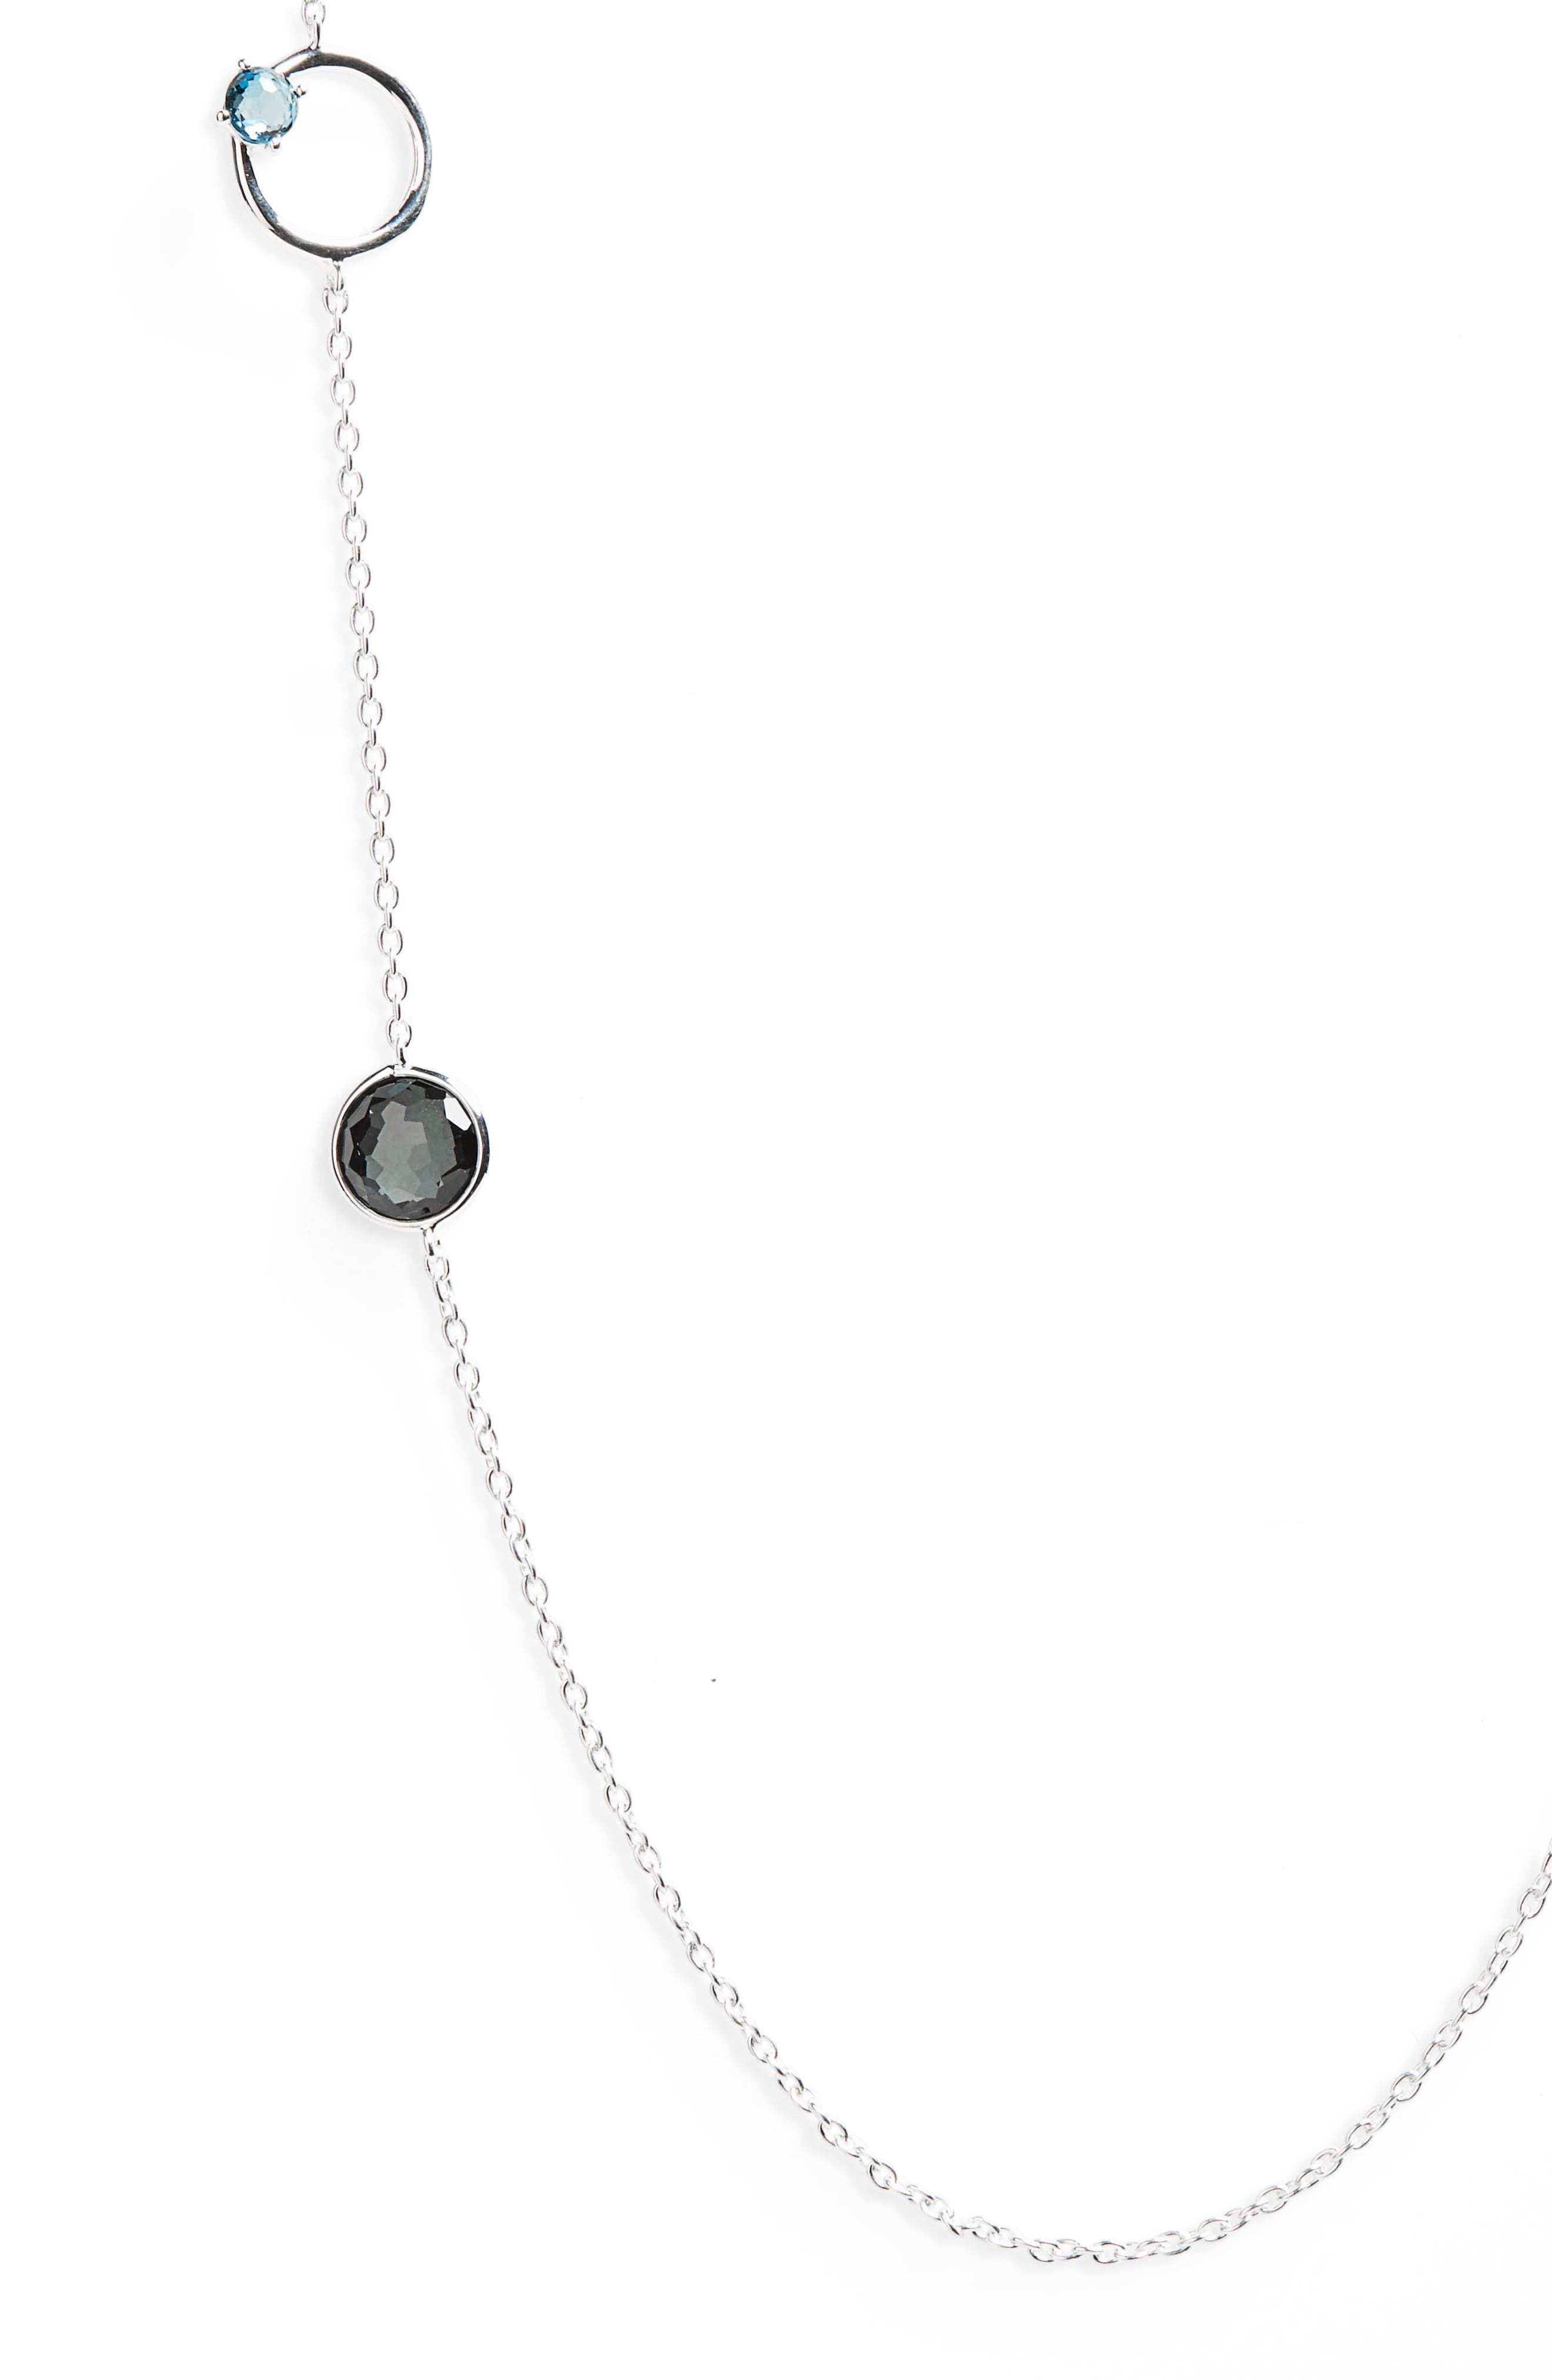 Rock Candy Strand Necklace,                             Alternate thumbnail 2, color,                             400